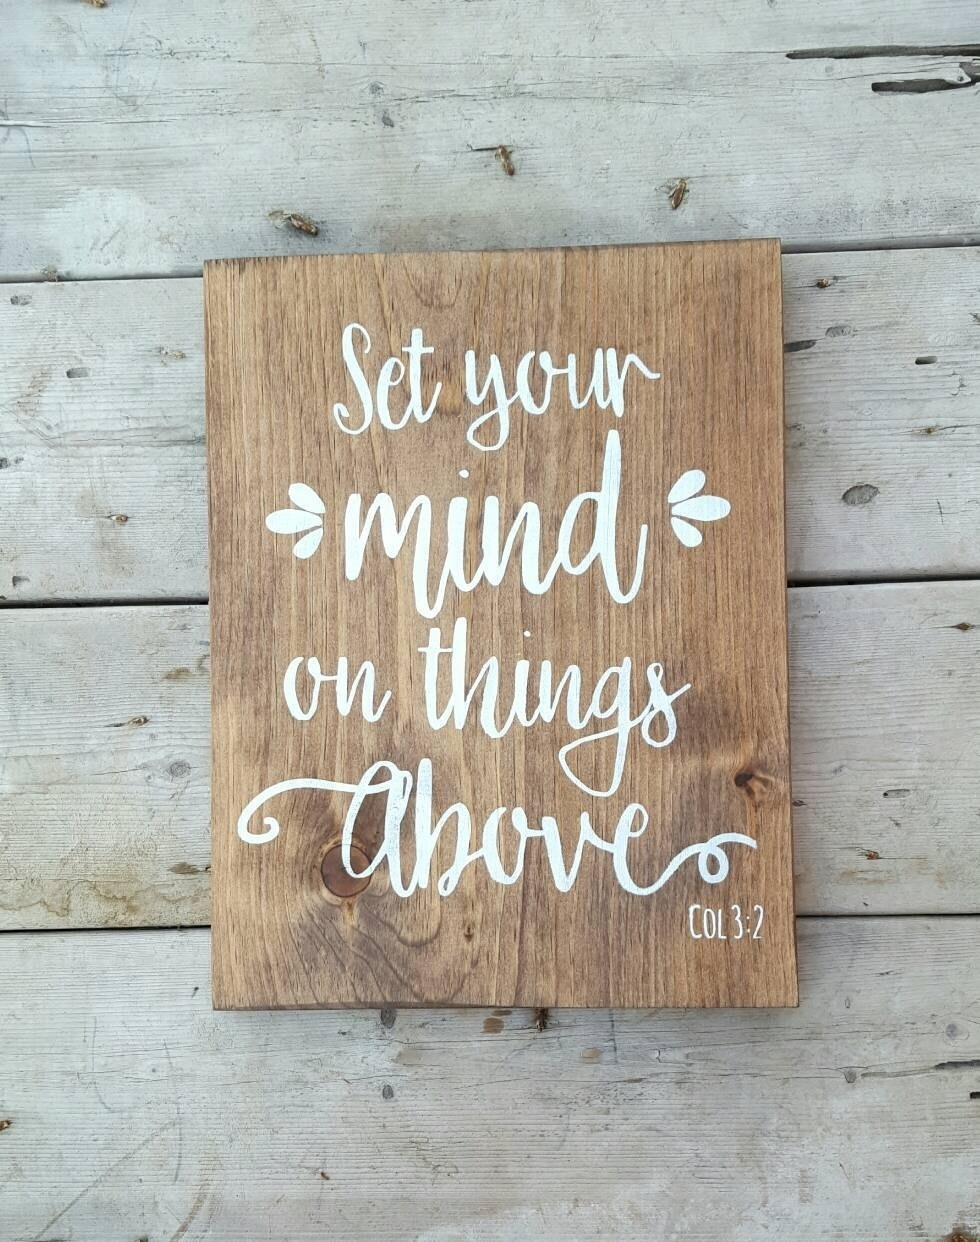 Most Popular Wood Wall Art Quotes Pertaining To Best 15 Of Wooden Wall Art Quotes Design Ideas Of Wall Art Sayings (View 8 of 15)